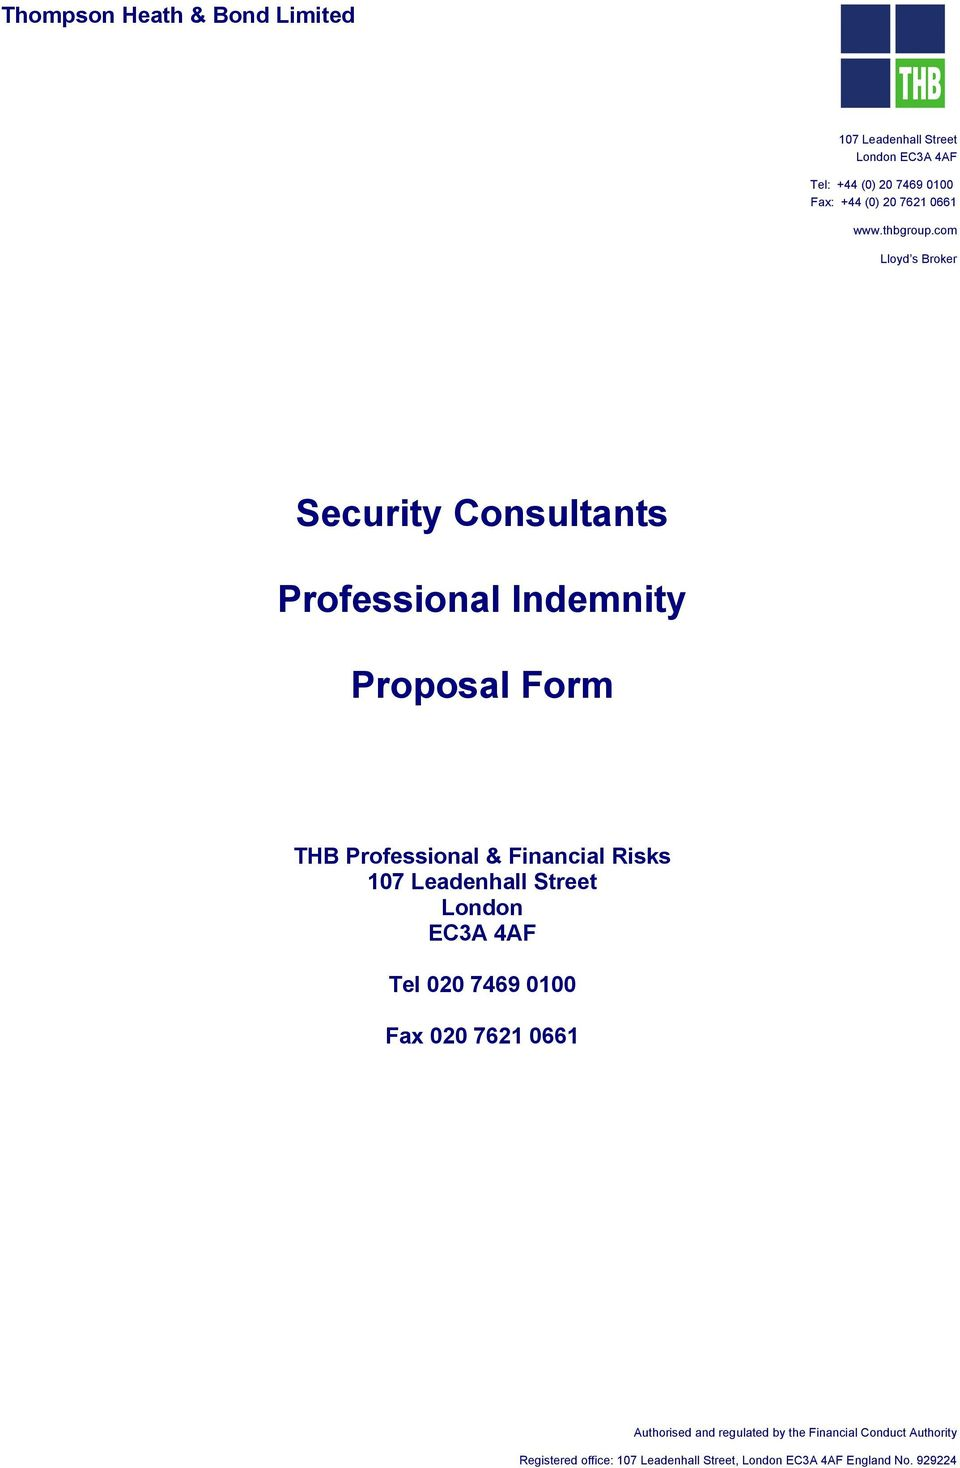 com Lloyd s Broker Security Consultants Professional Indemnity Proposal Form THB Professional & Financial Risks